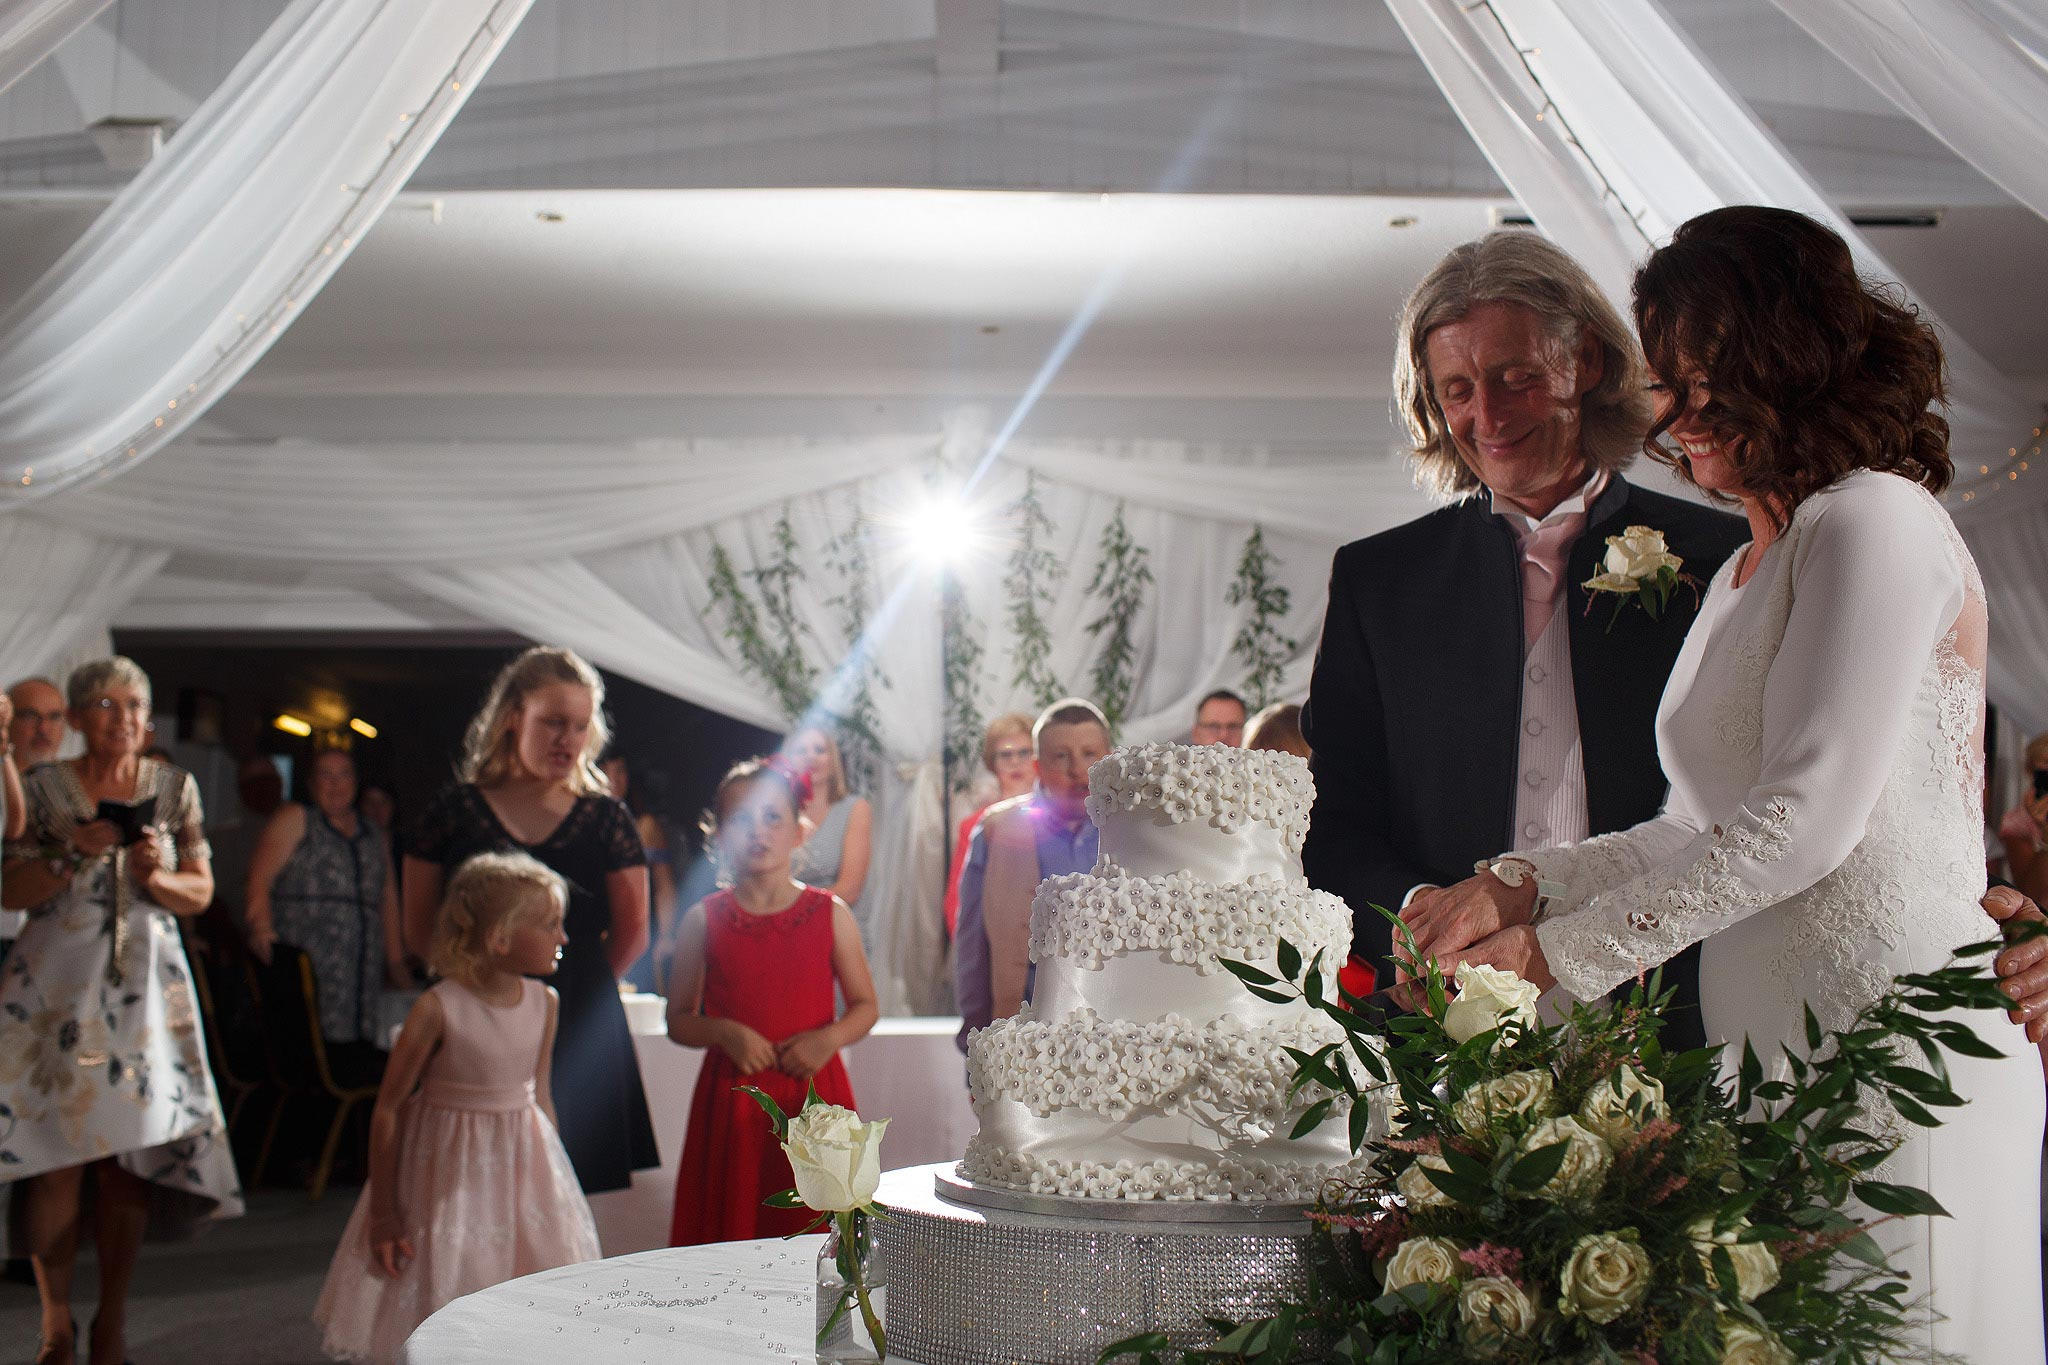 Bride and groom cutting the cake at Stirk House hotel wedding reception